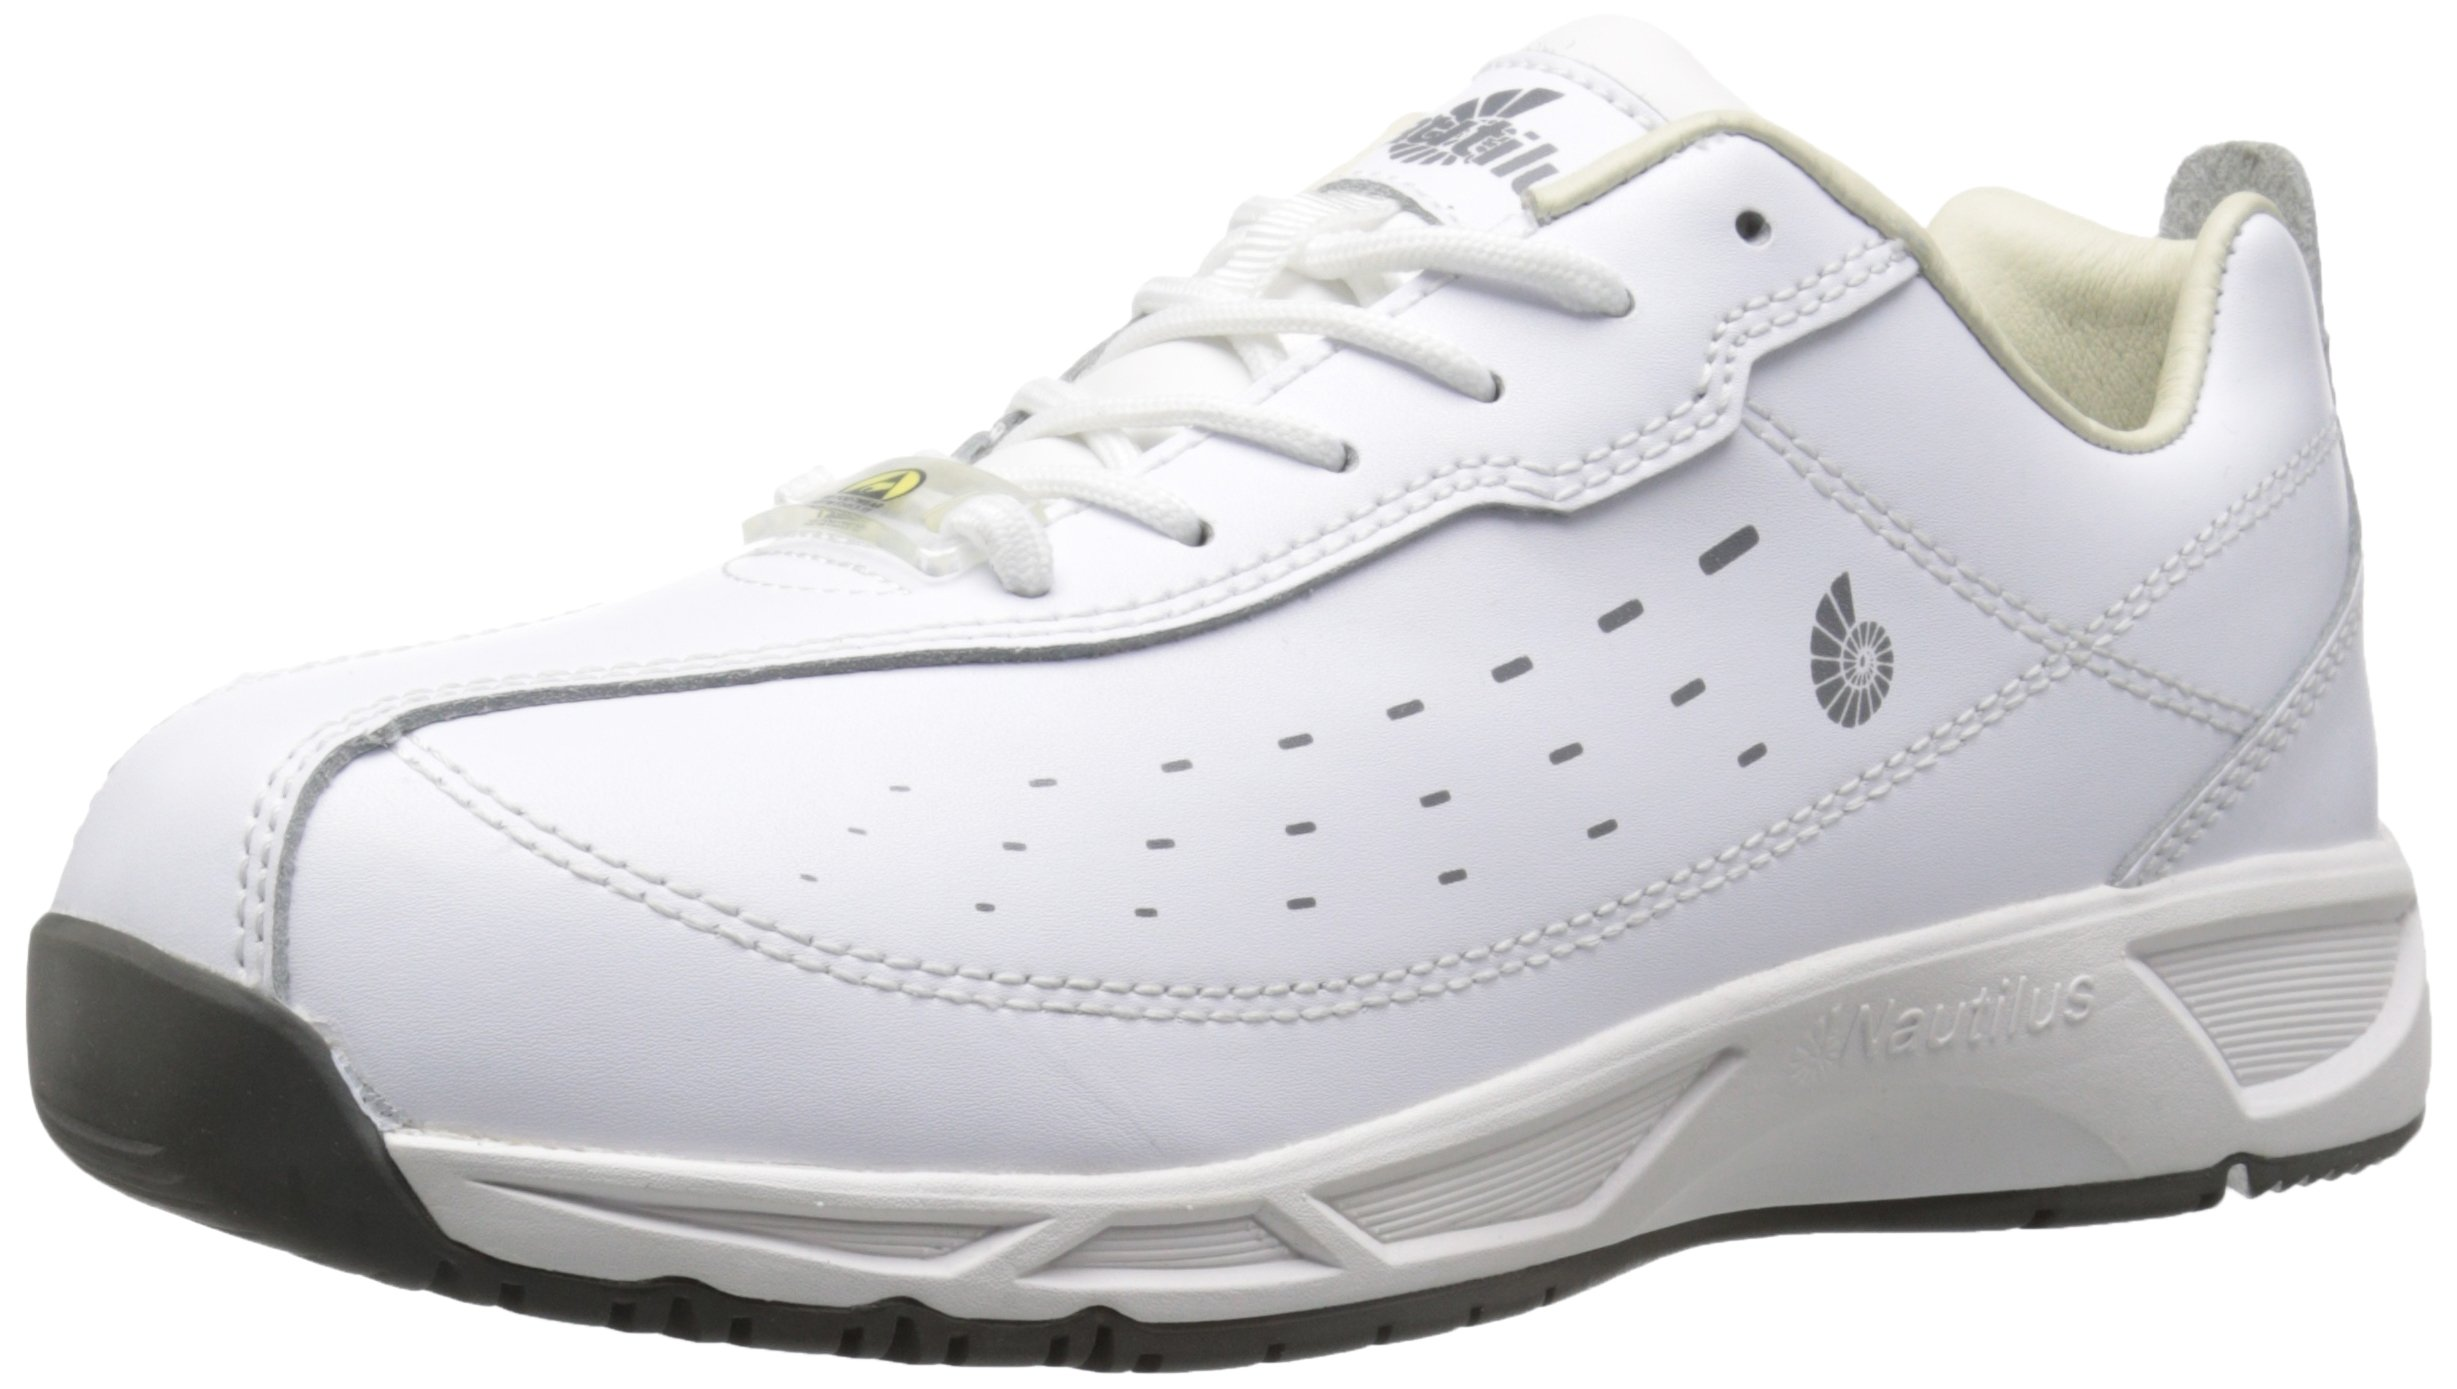 Nautilus 4046 ESD No Exposed Metal Soft Toe Clean Room Athletic Shoe, White, 7.5 M US